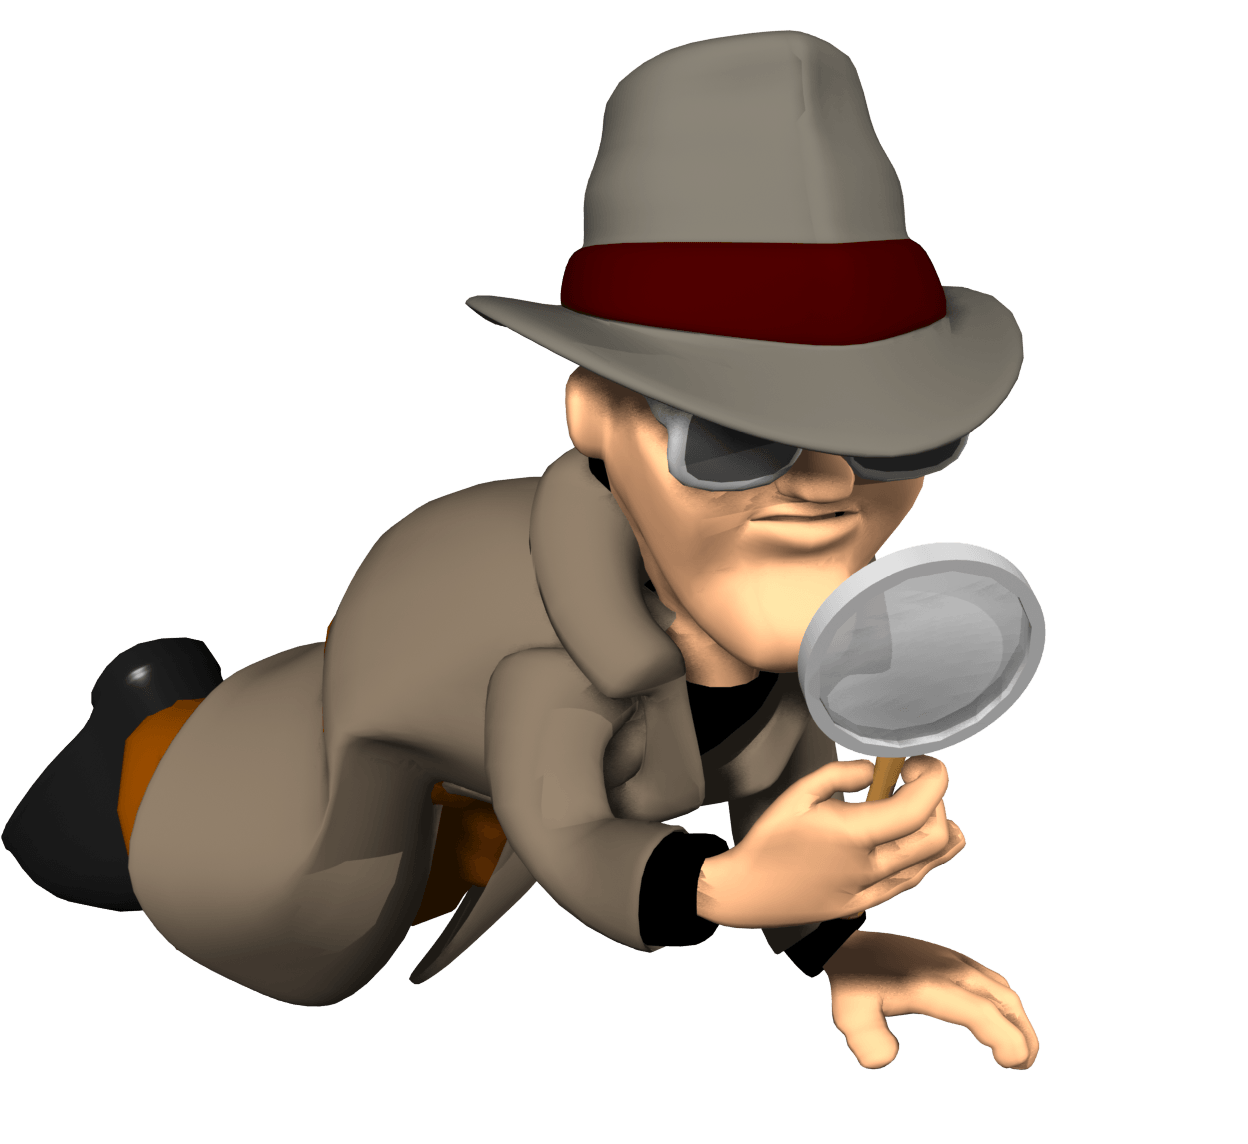 Detective clipart clue. About how the hell